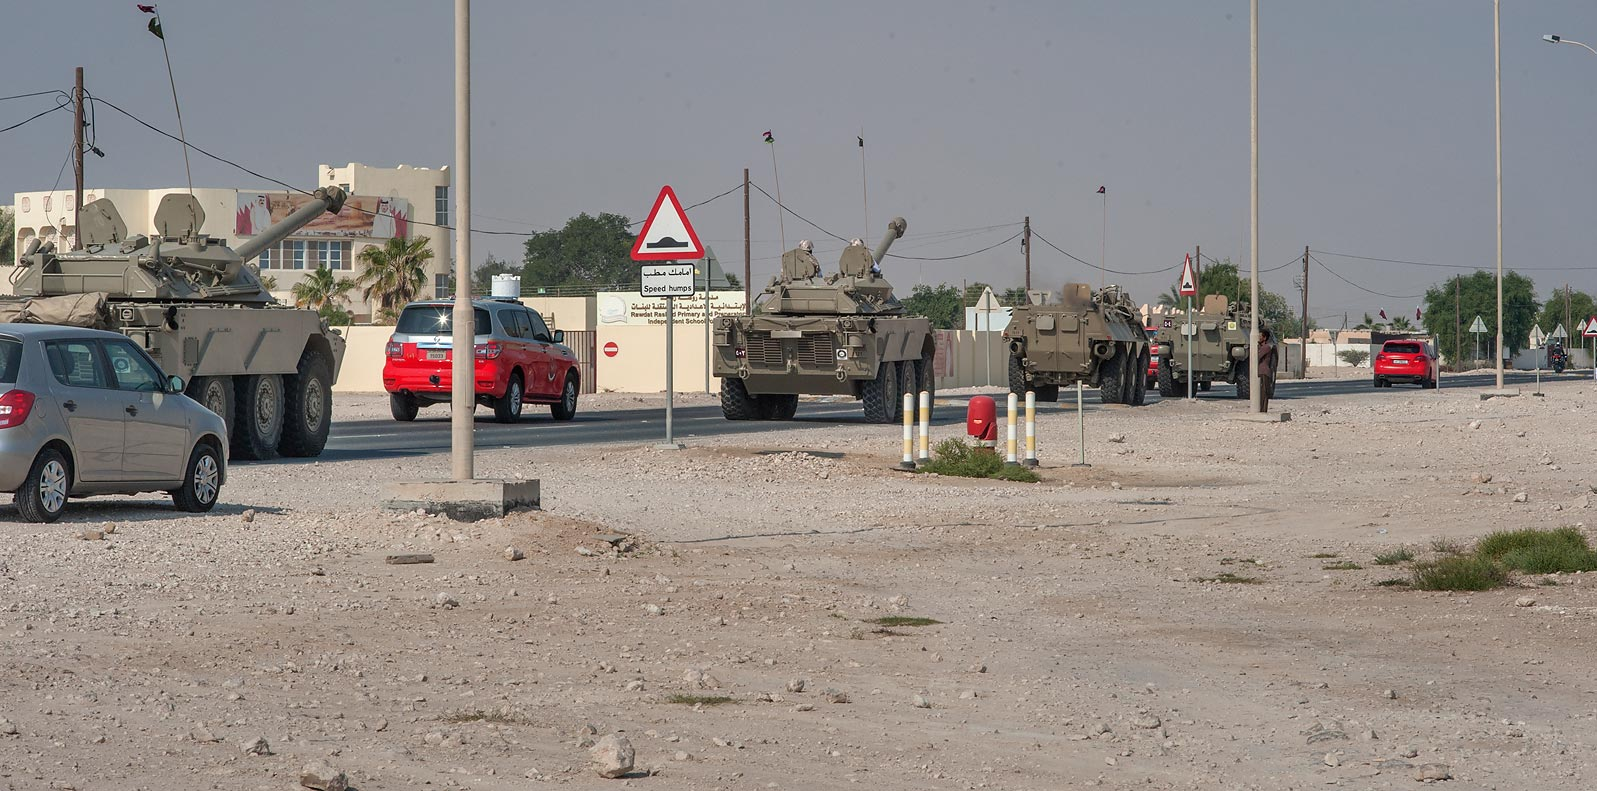 Convoy of military vehicles in Rawdat Rashed. Qatar